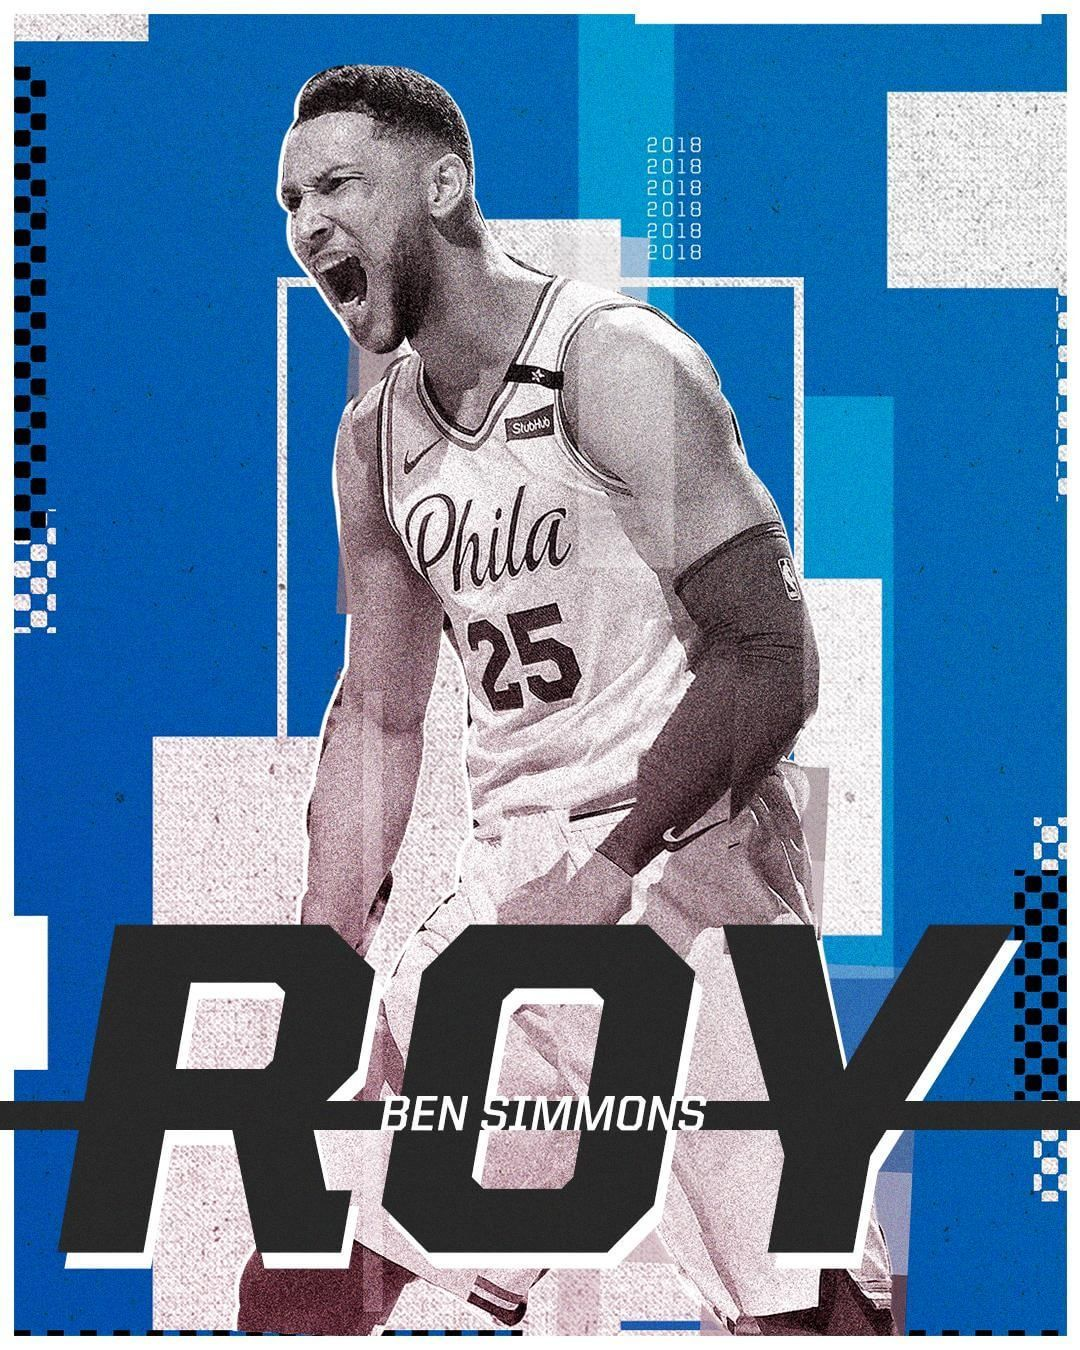 Rookie Of The Year Noun Ben Simmons Rookie of the year poster